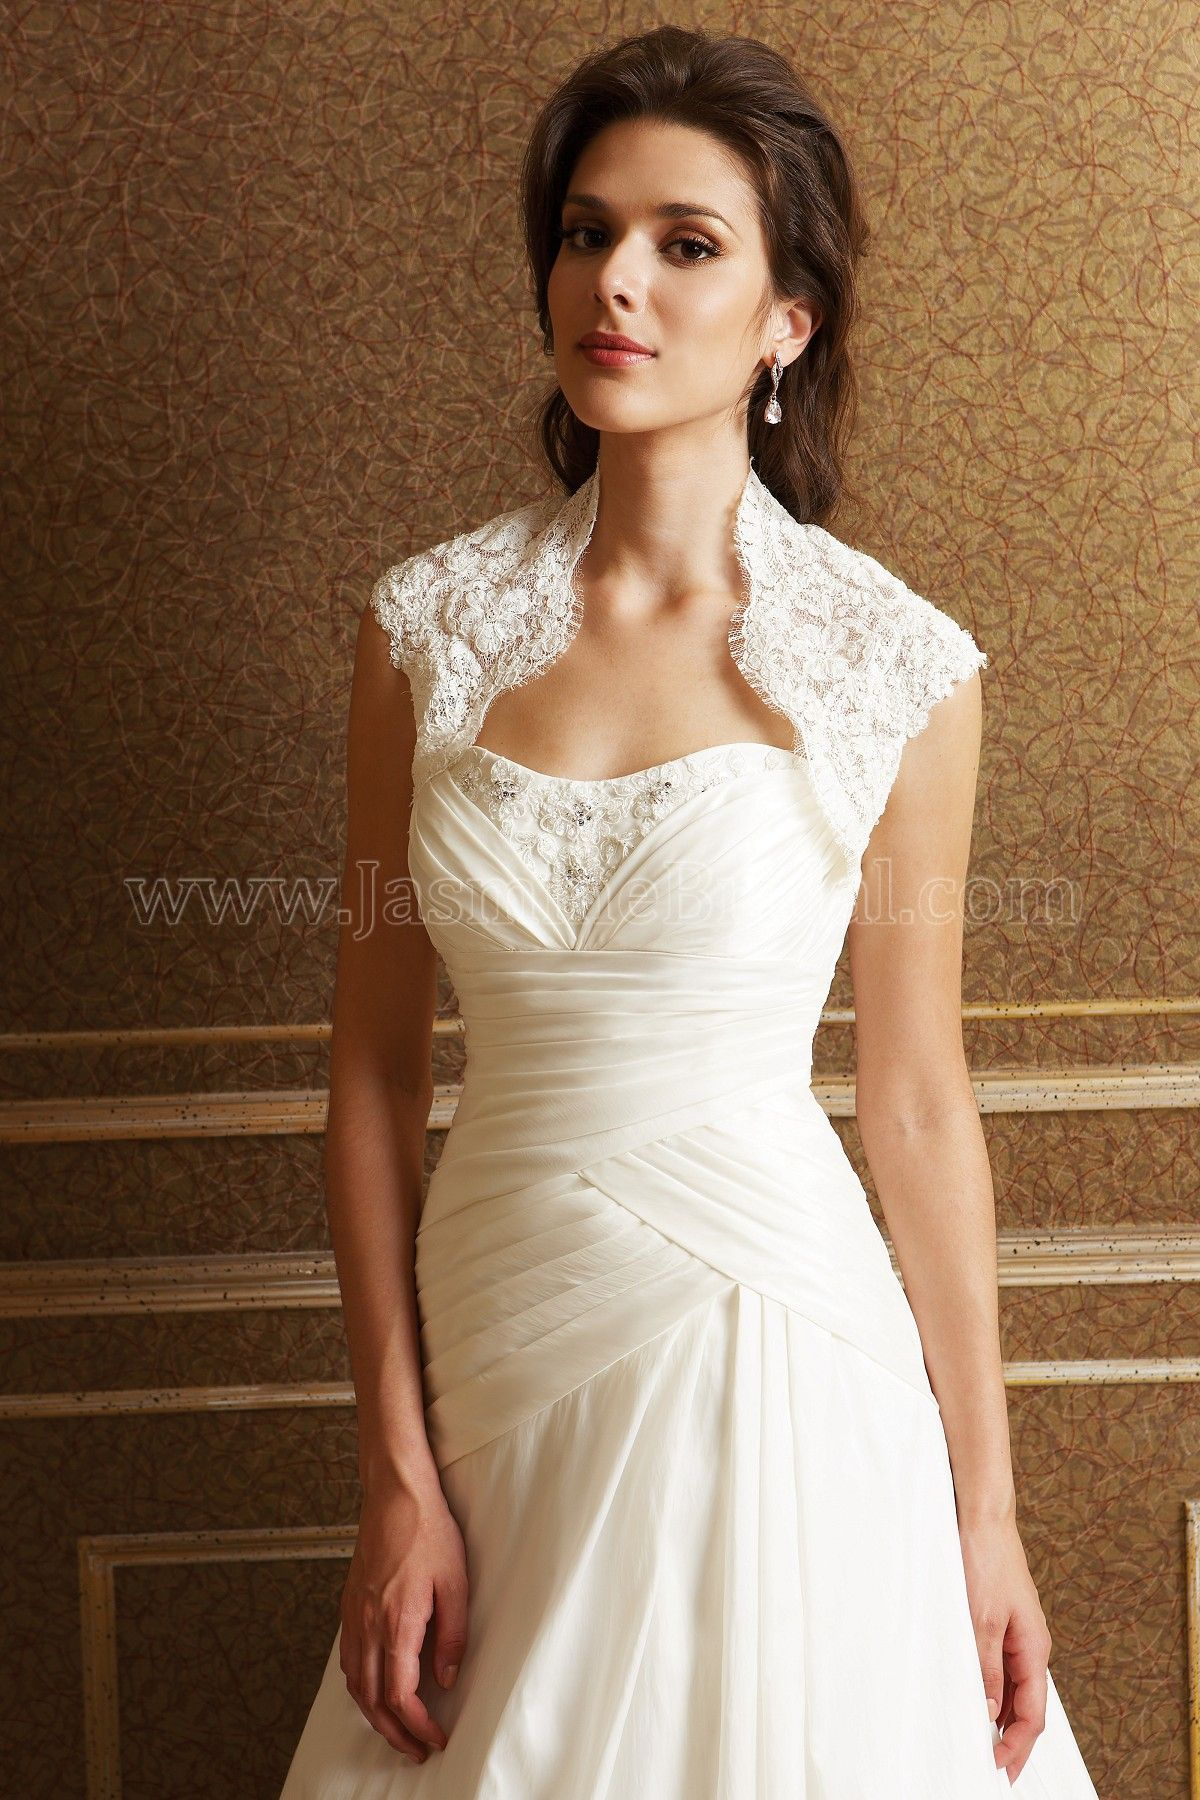 Catalog Color IVORY (IV) FABRIC Beaded lace and Netting | Bridal ...